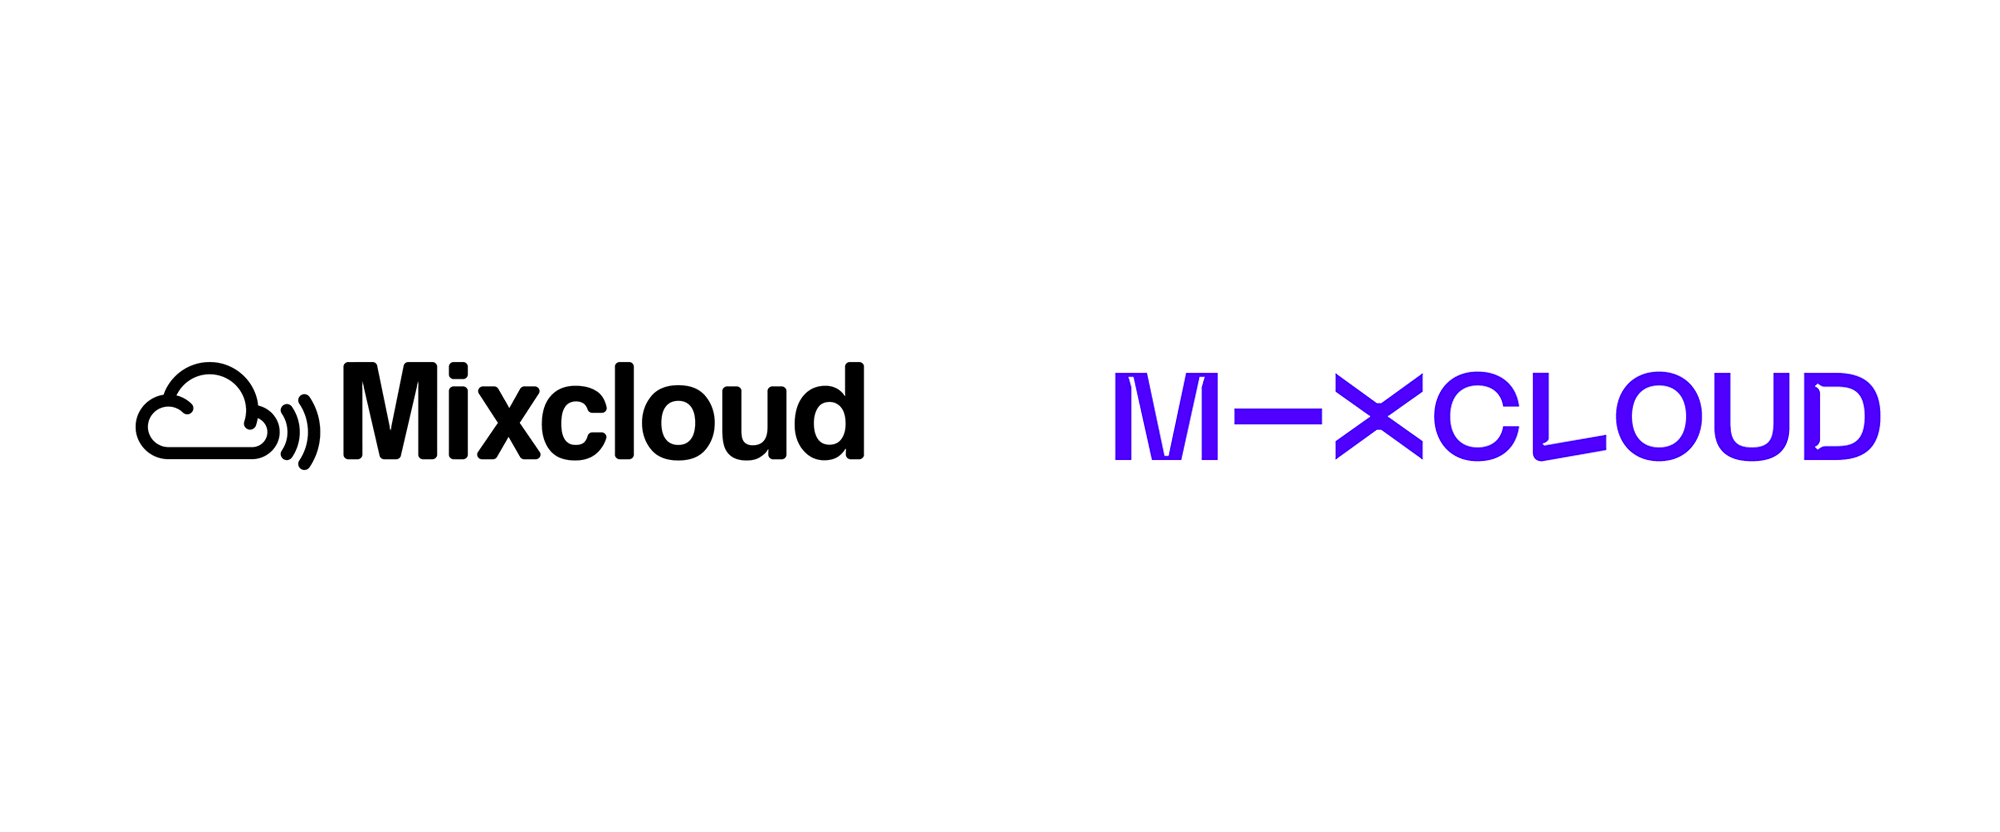 New Logo and Identity for Mixcloud by Output